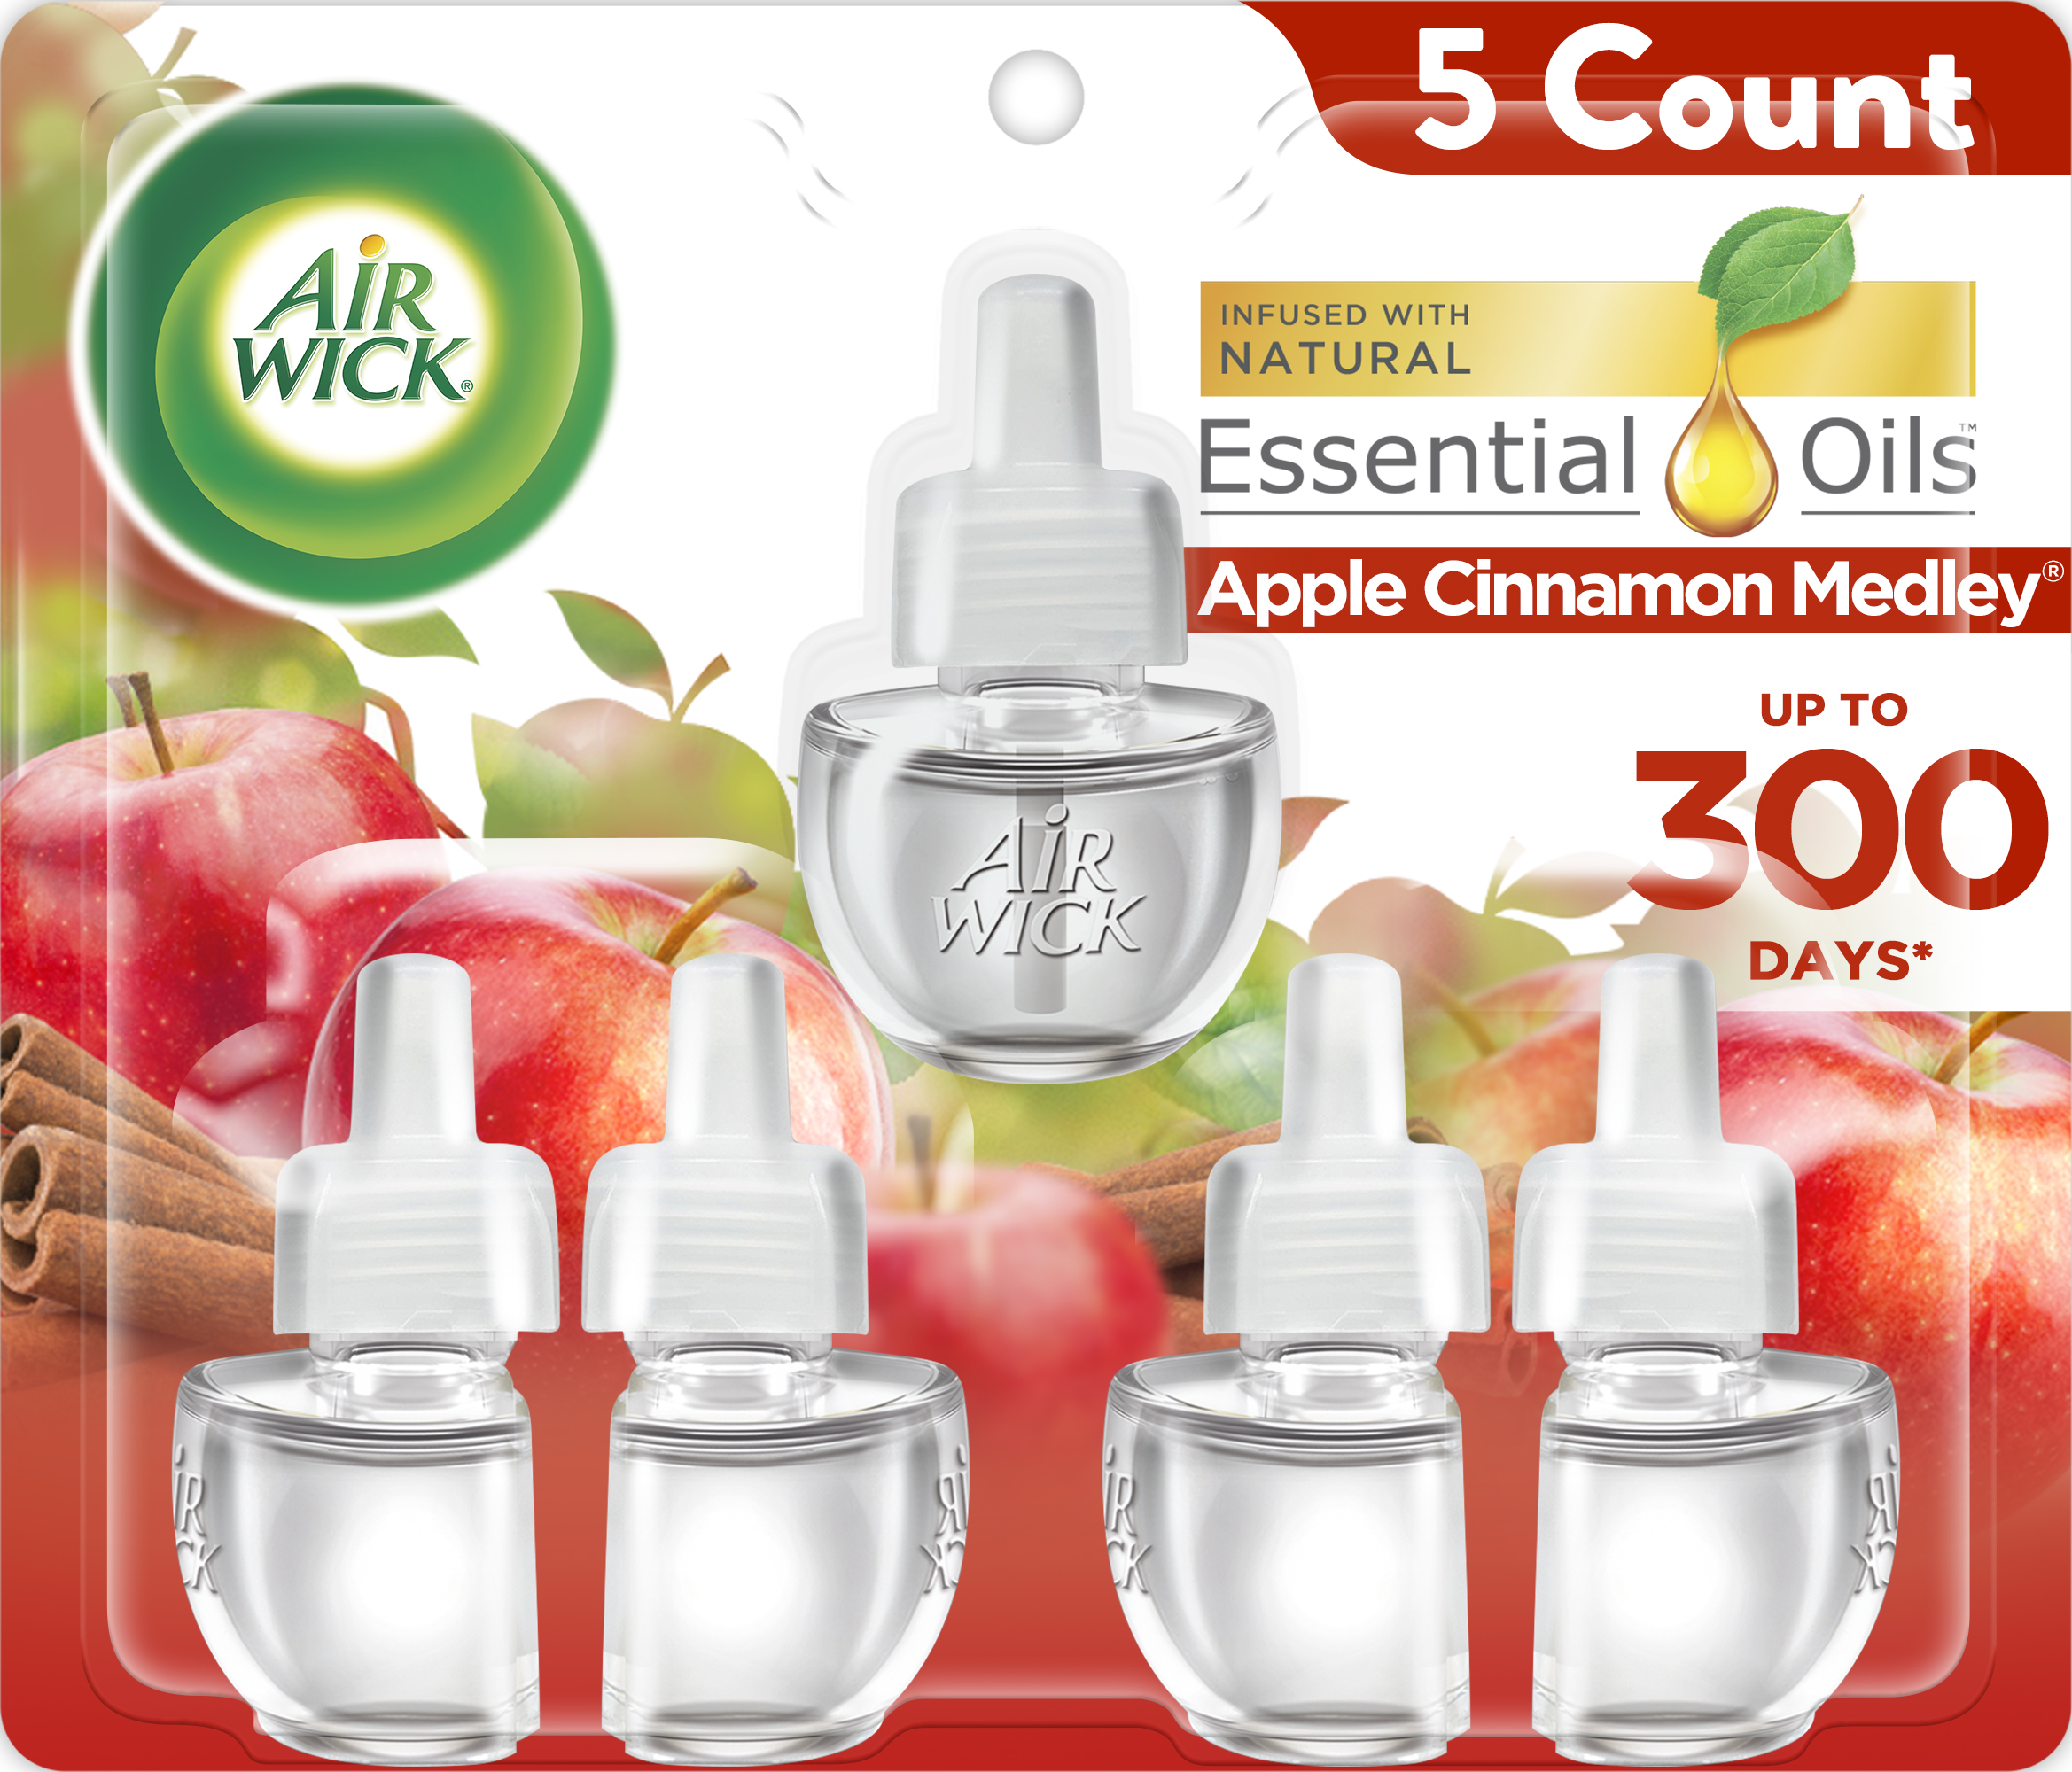 Air Wick Plug In Scented Oil Refill 5 Ct Apple Cinnamon Medley Air Freshener Essential Oils Fall Scent Fall Decor Walmart Com Walmart Com